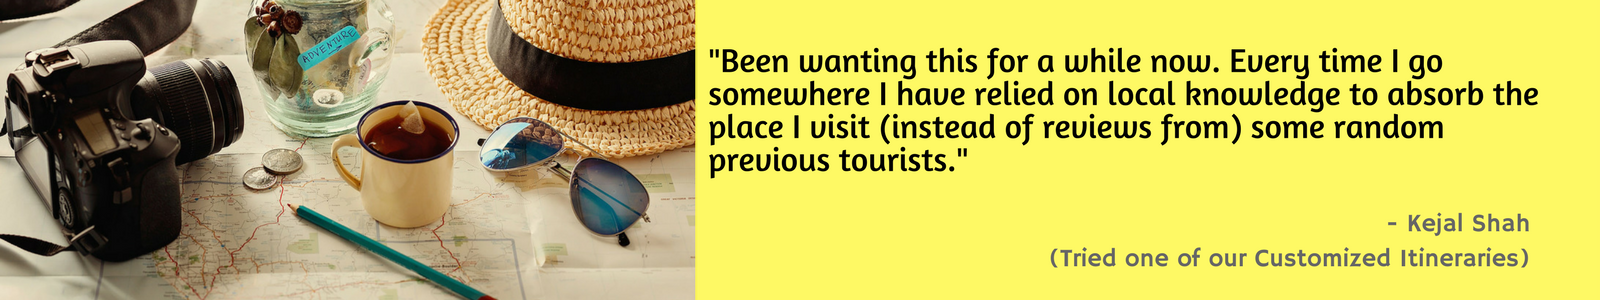 Testimonial from a user for a Customized Itinerary on GoPo